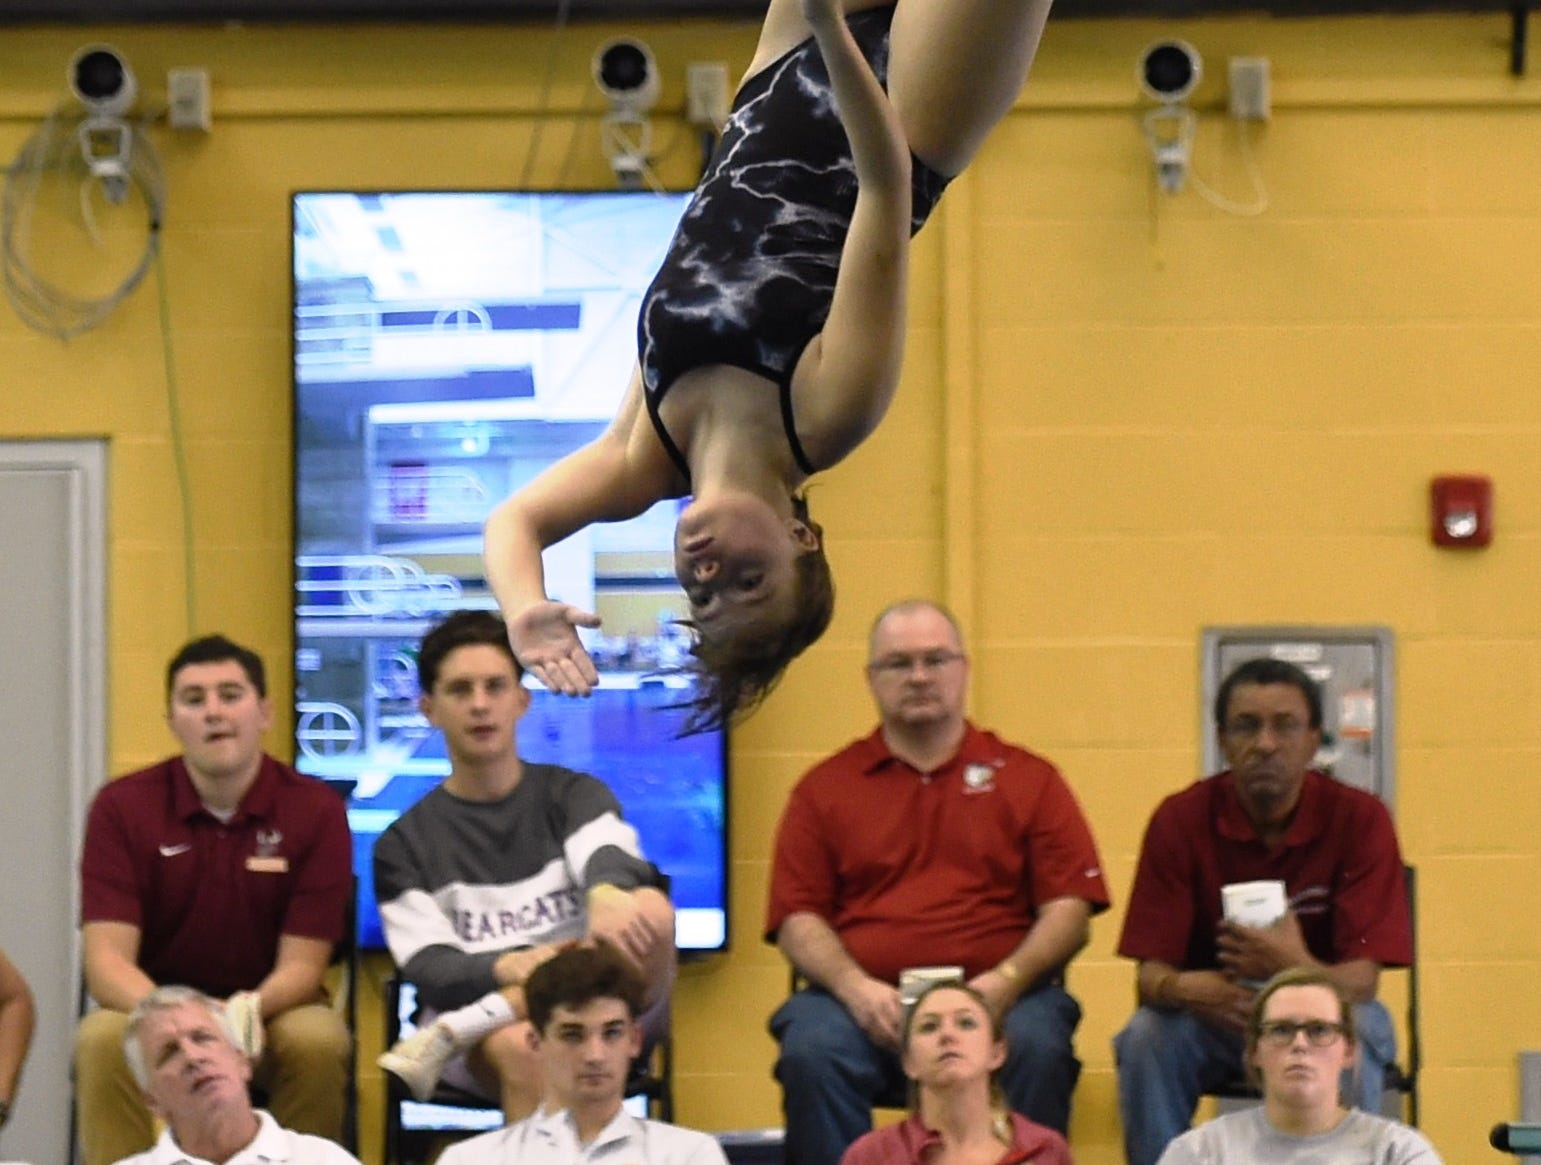 Images from Saturday's North Central Conference Swimming and Diving Championships at Purdue. Lydia Fox.